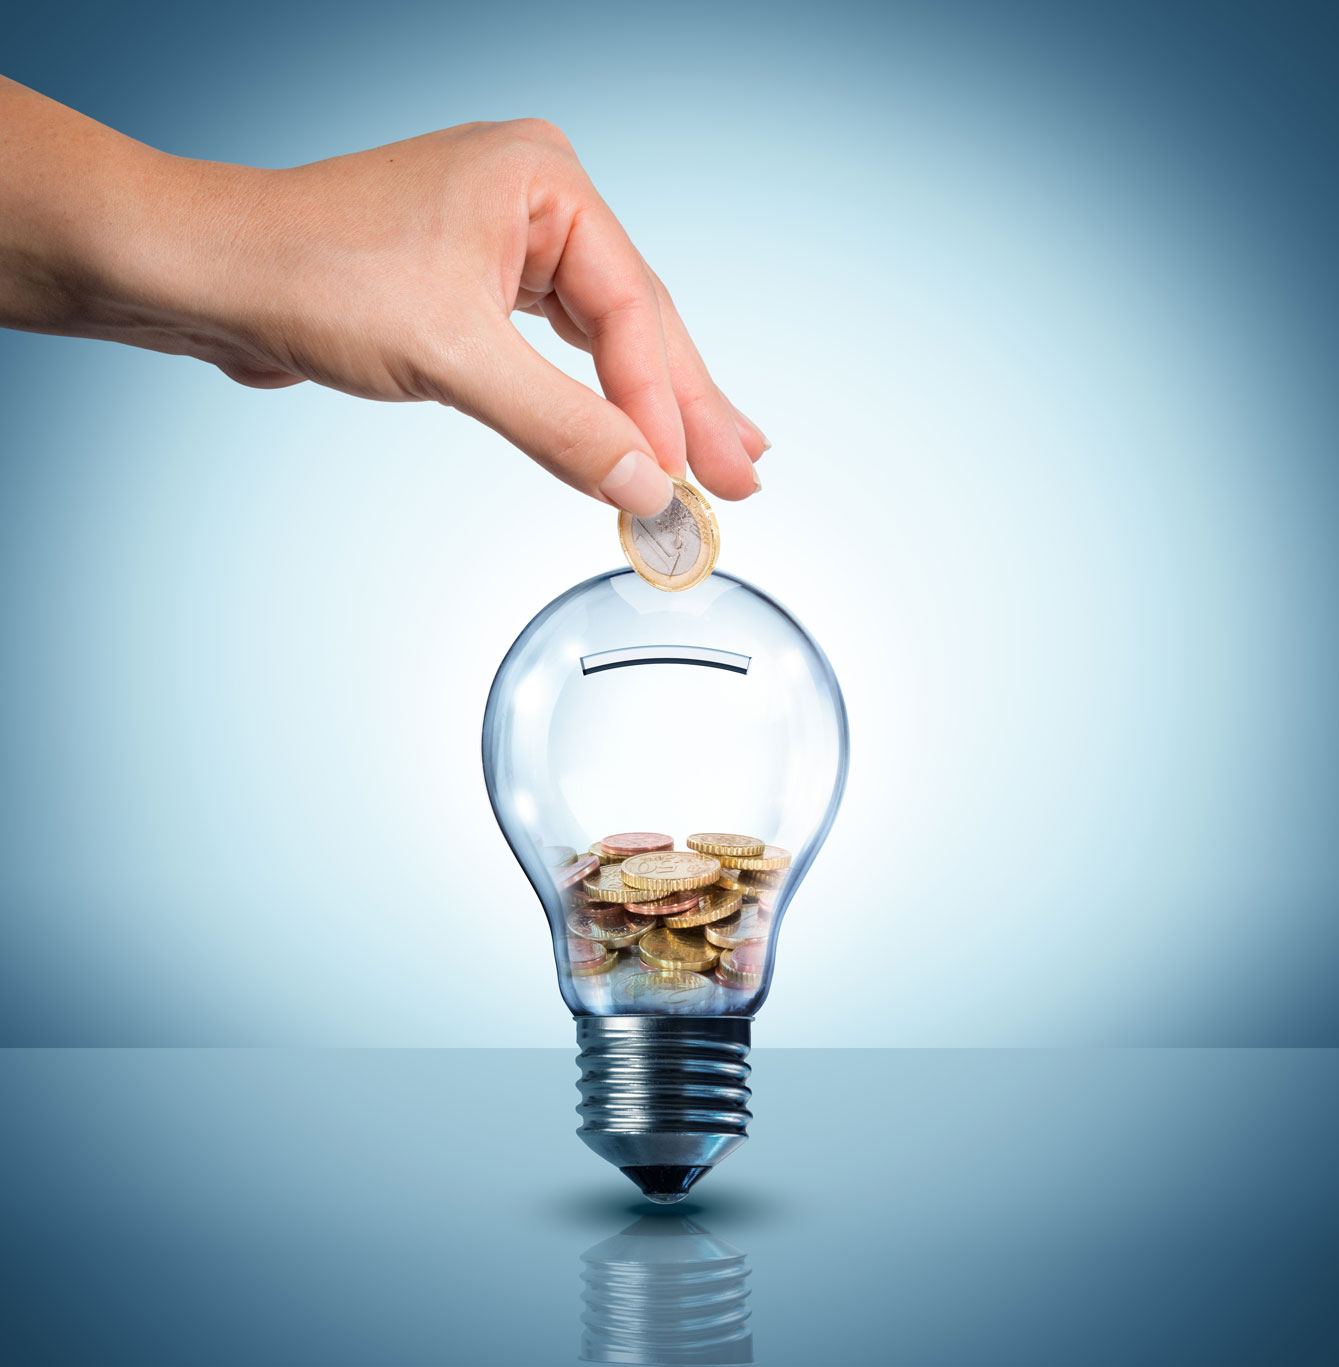 energy saving tips shows hand putting coin in lightbulb